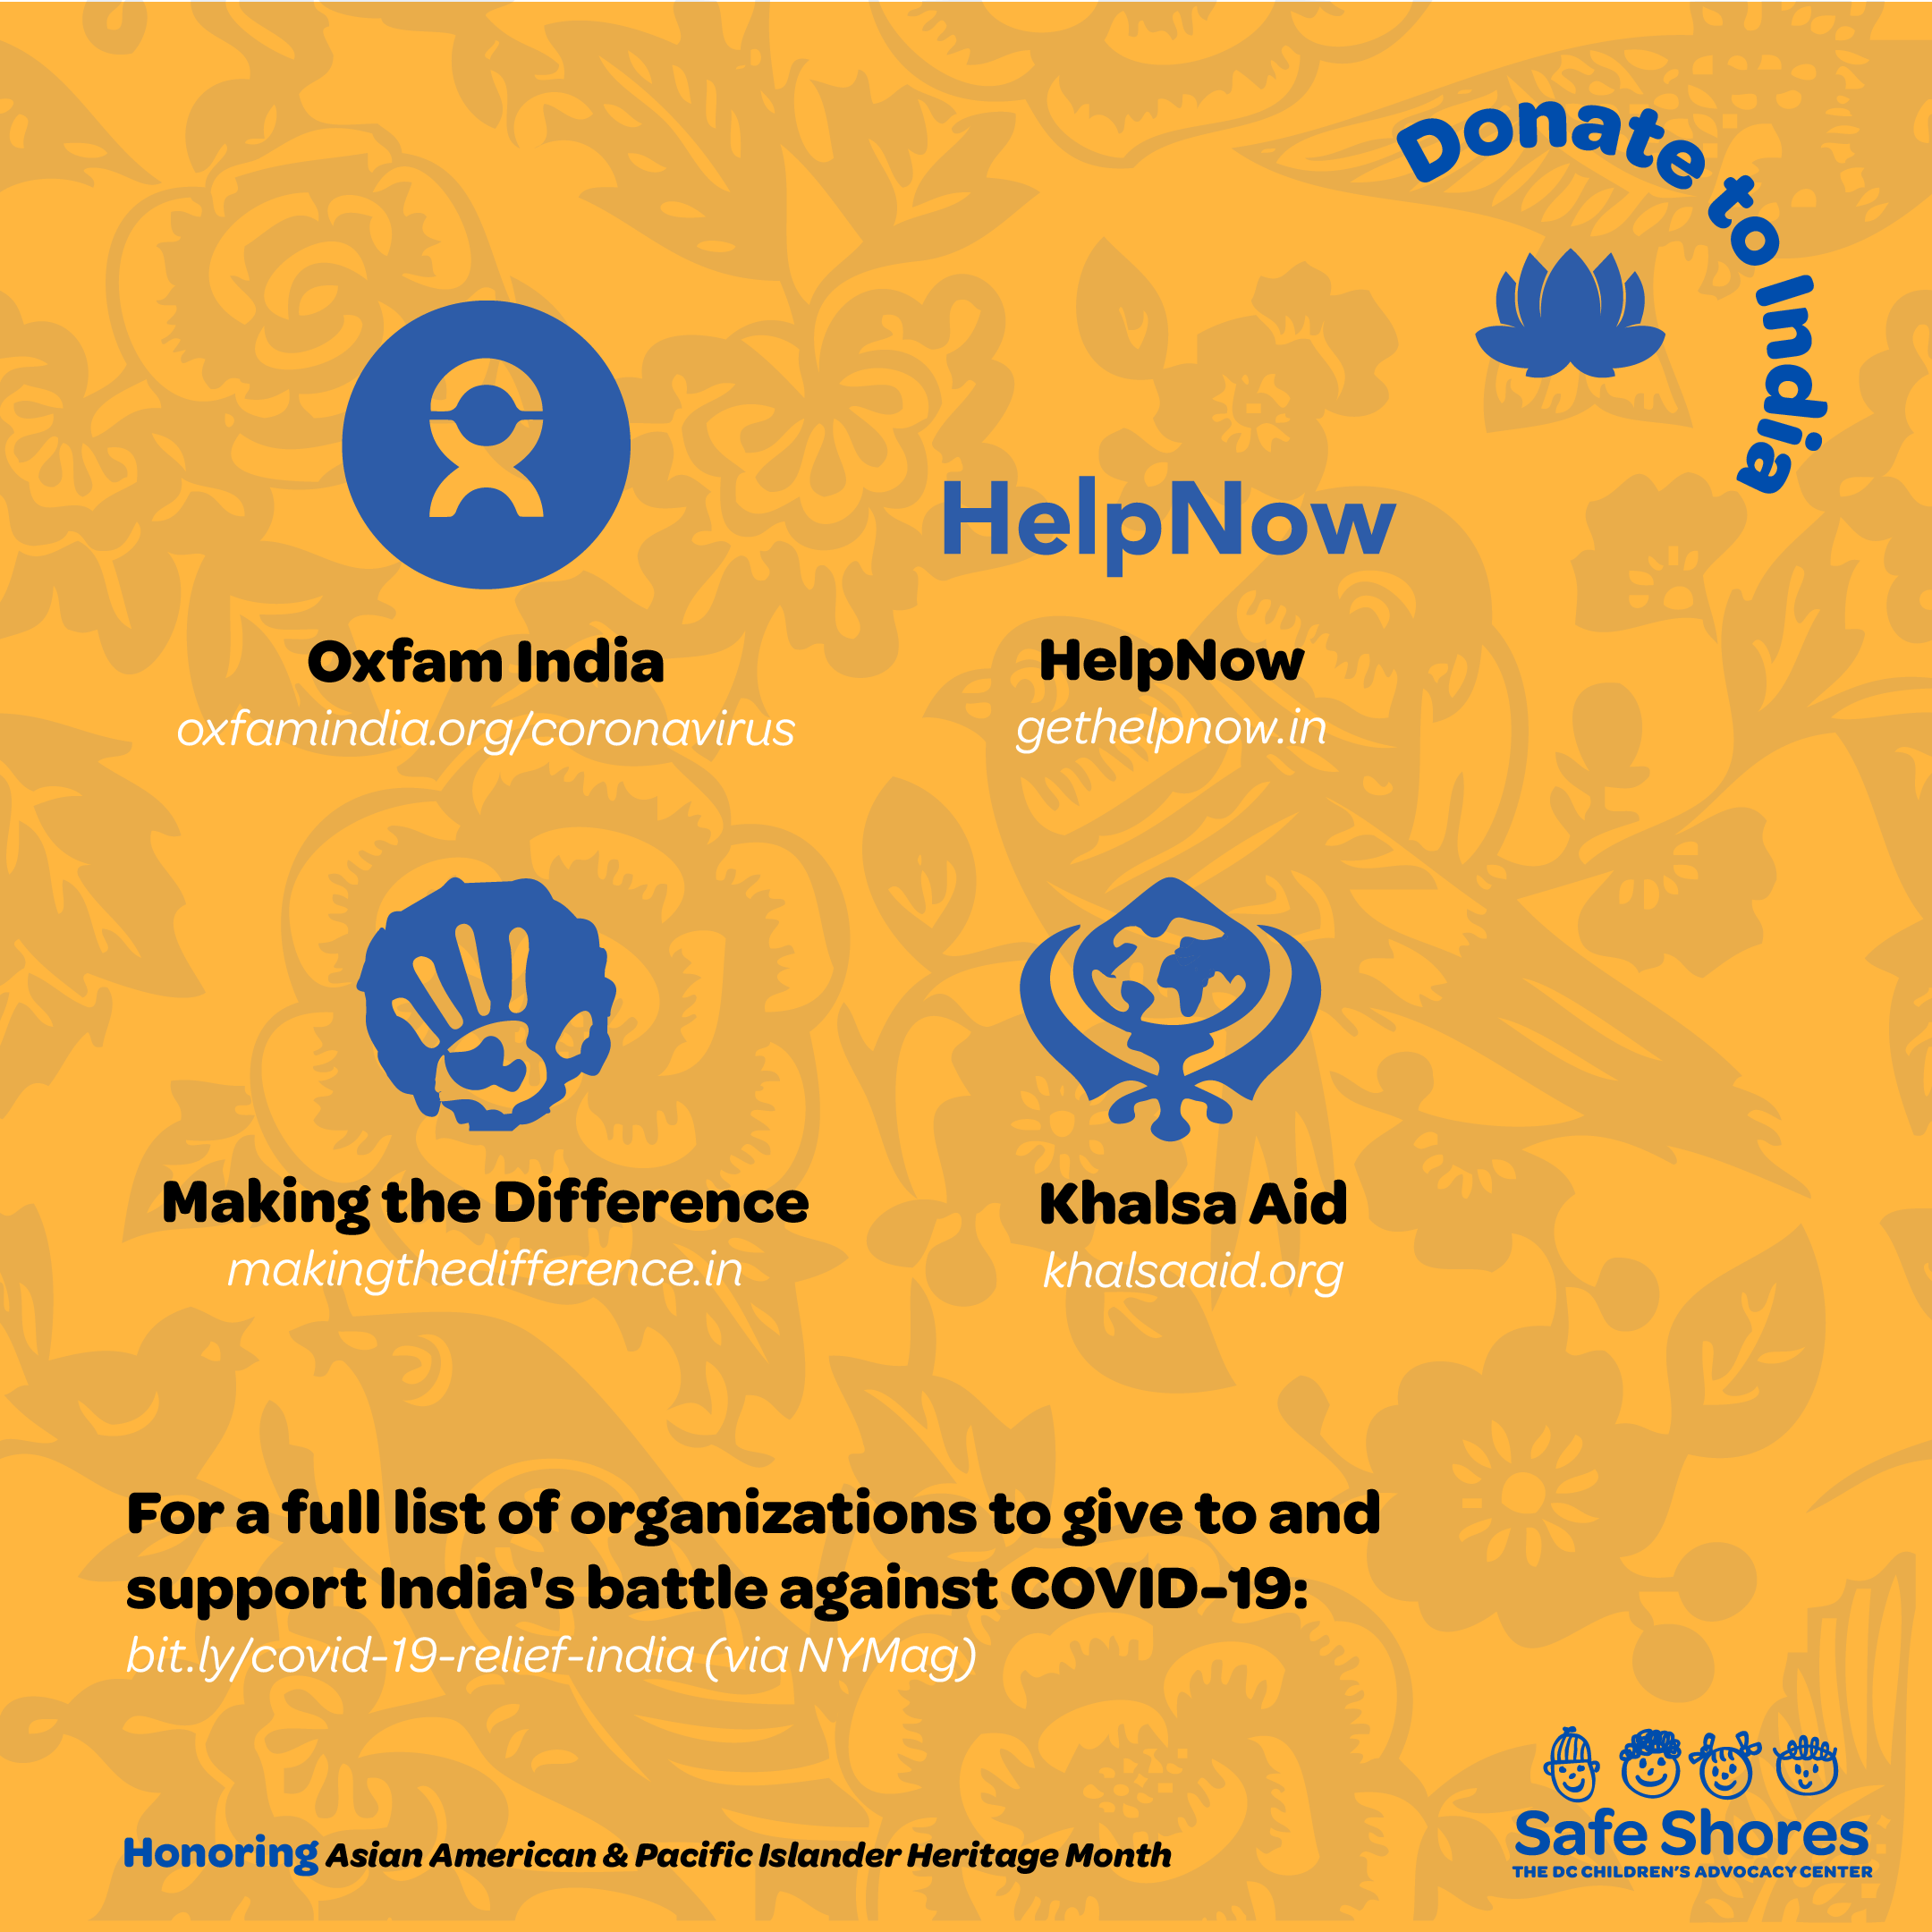 Organizations to donate to for assist in India's battle against COVID-19. Organizations listed include: 1.Oxfam India 2. HelpNow India 3. Making the Difference 4. Khalsa Aid